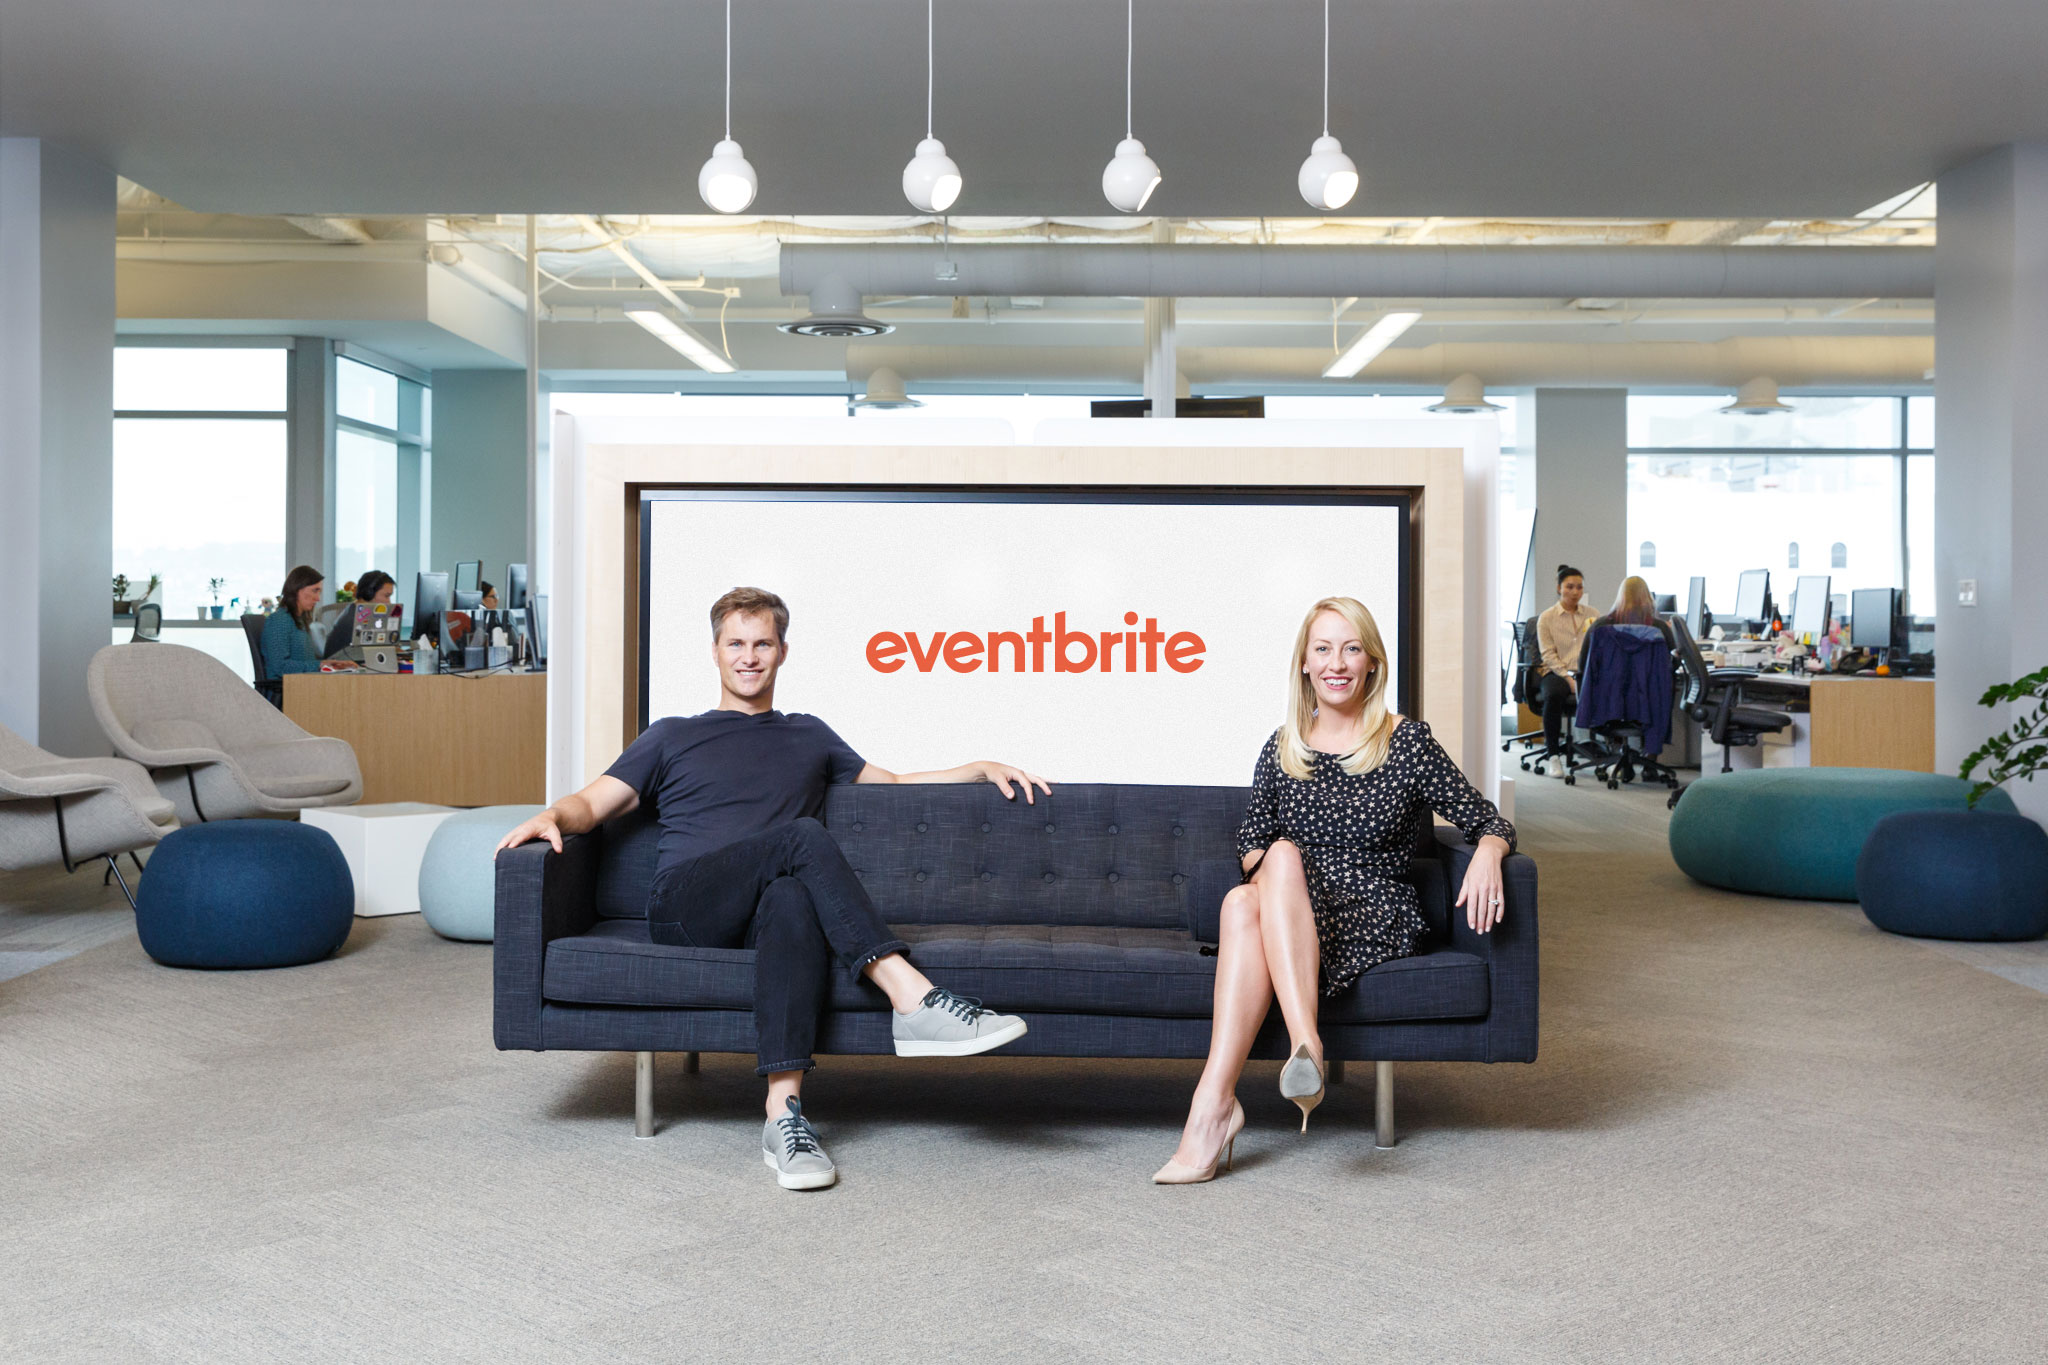 Eventbrite co-founders Julia and Kevin Hartz